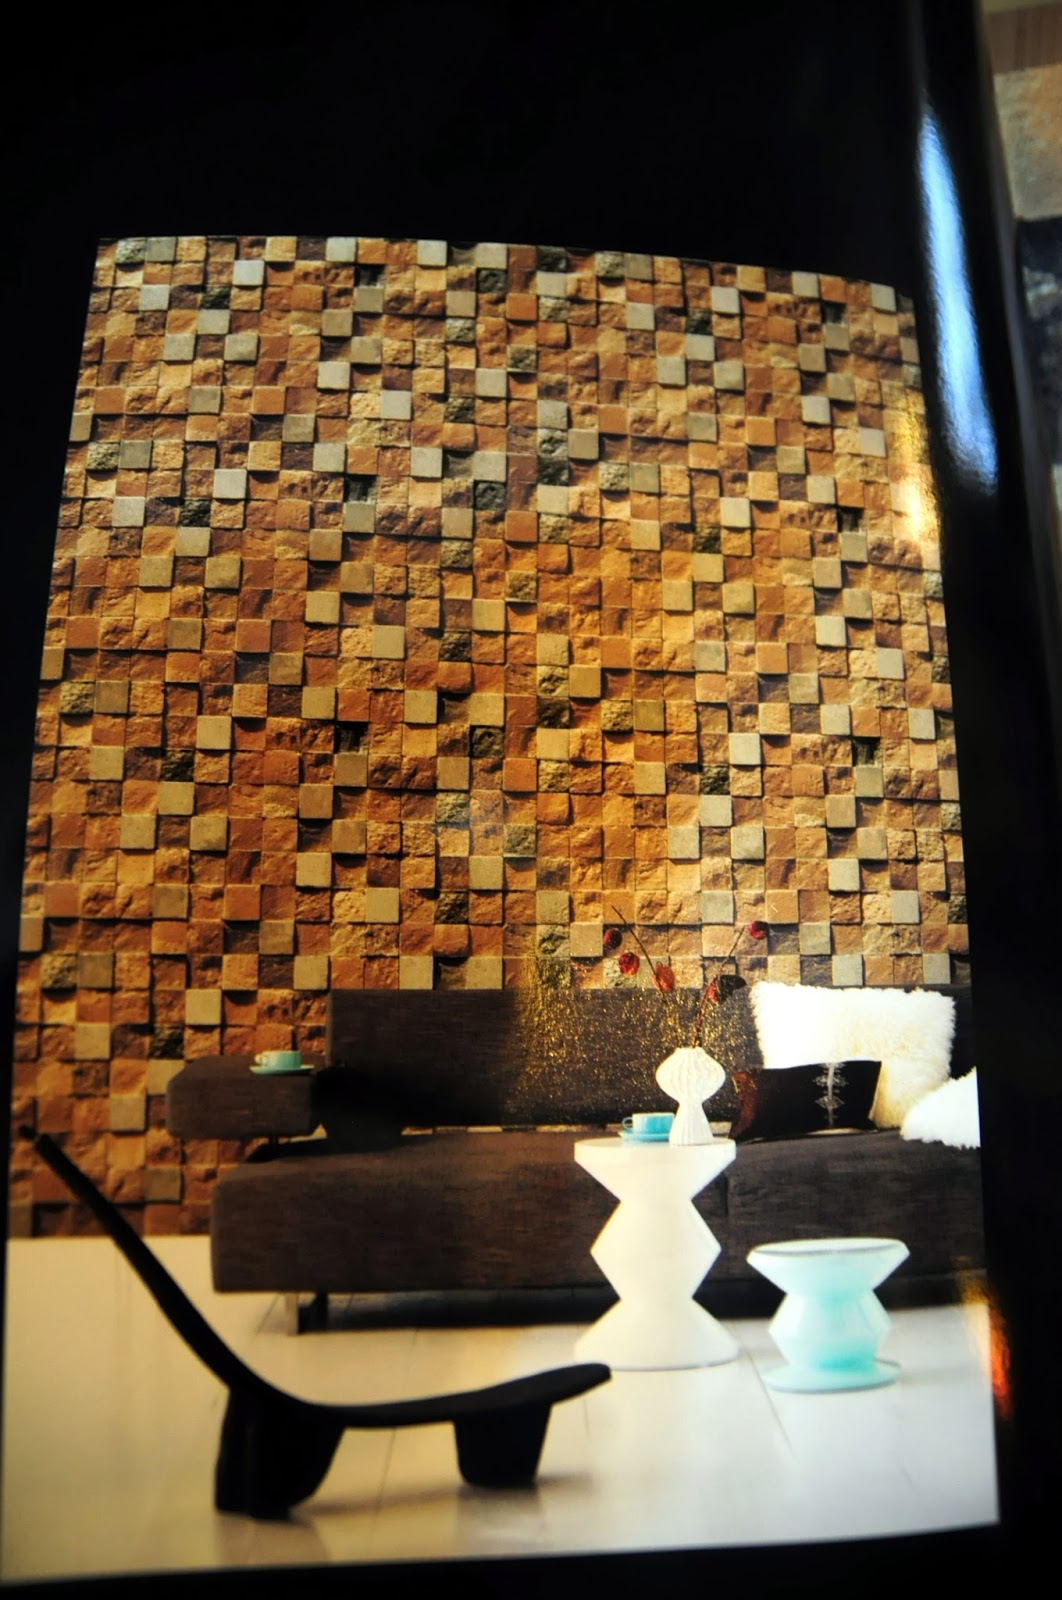 Tabby cameo interior wallpaper 3d malaysia call me 016 for 3d wallpaper for home malaysia